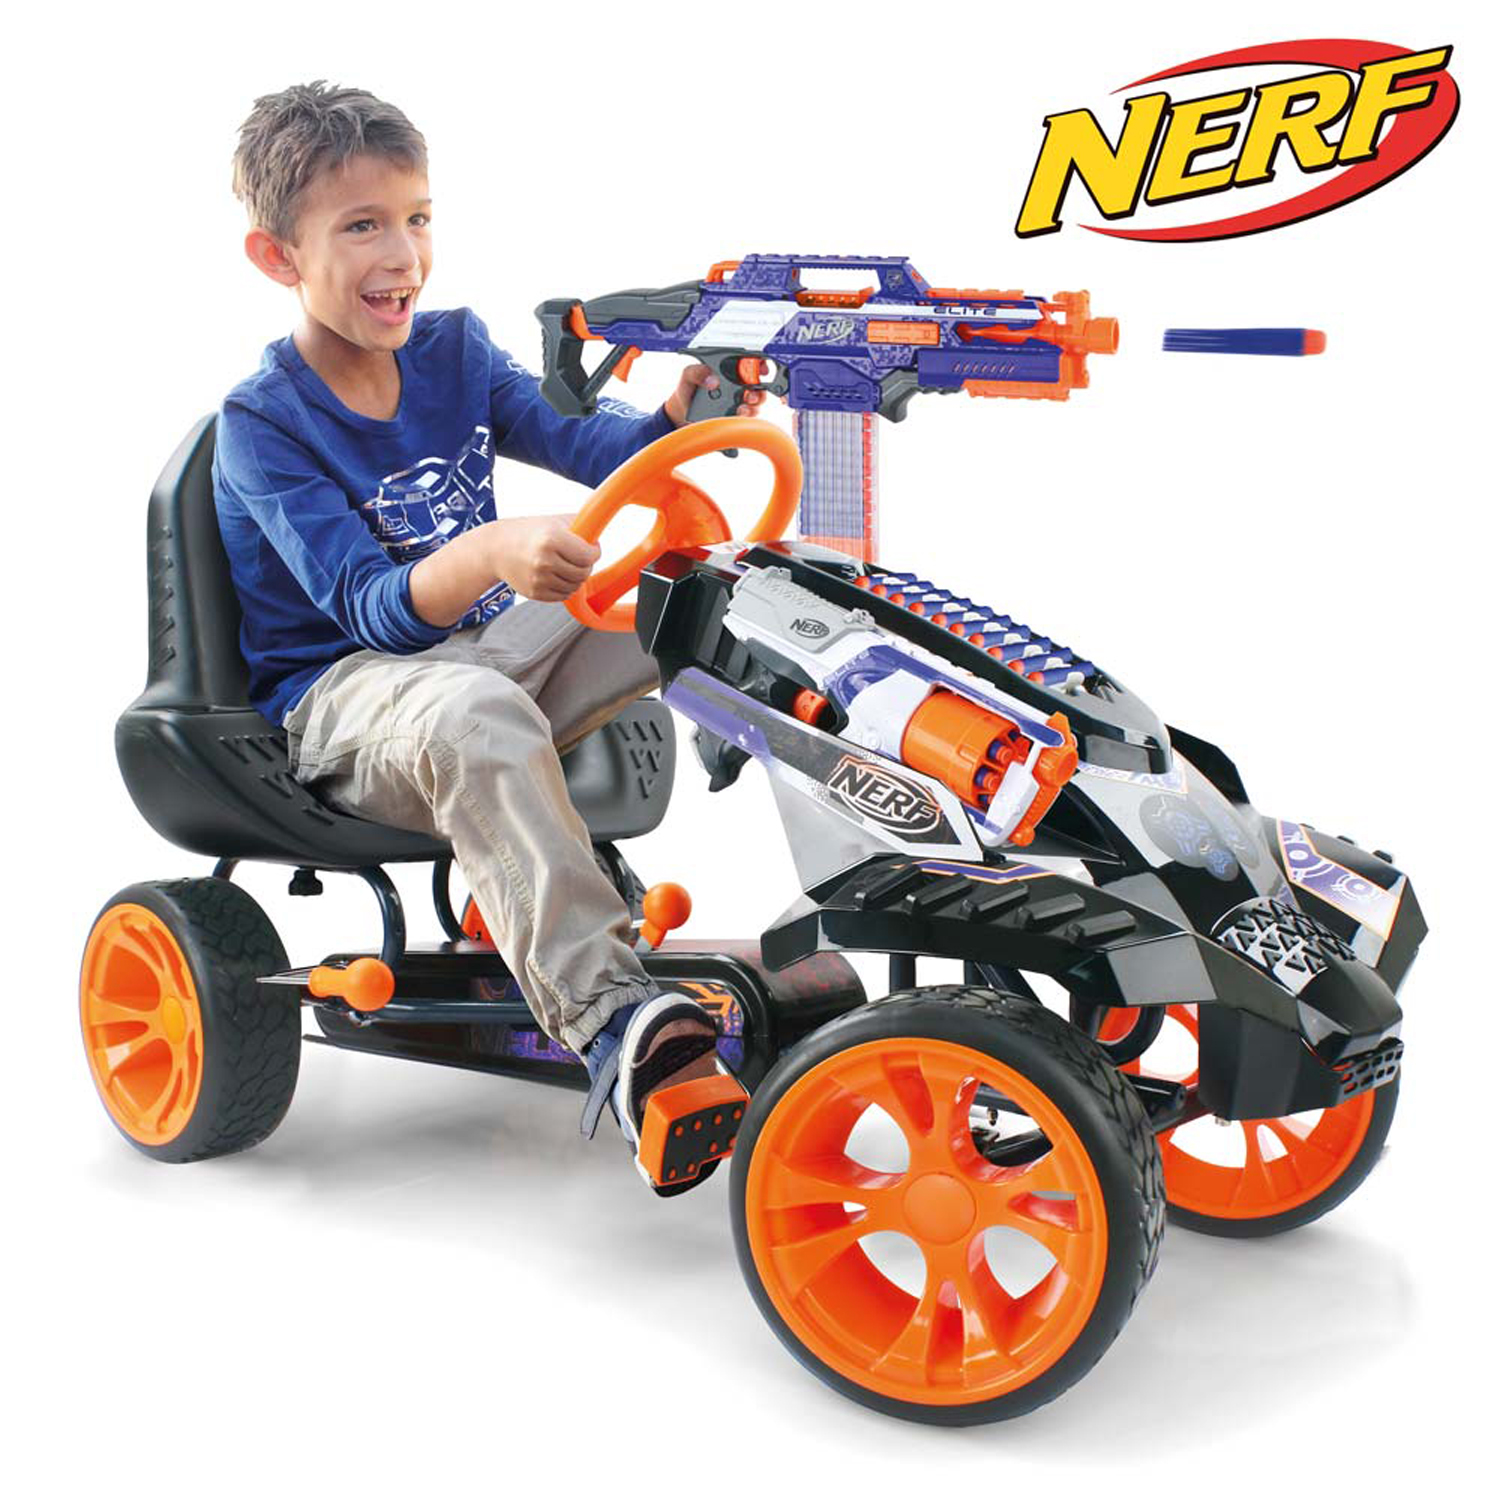 Nerf Battle Racer Ride-On Pedal Go-Kart by Hauck